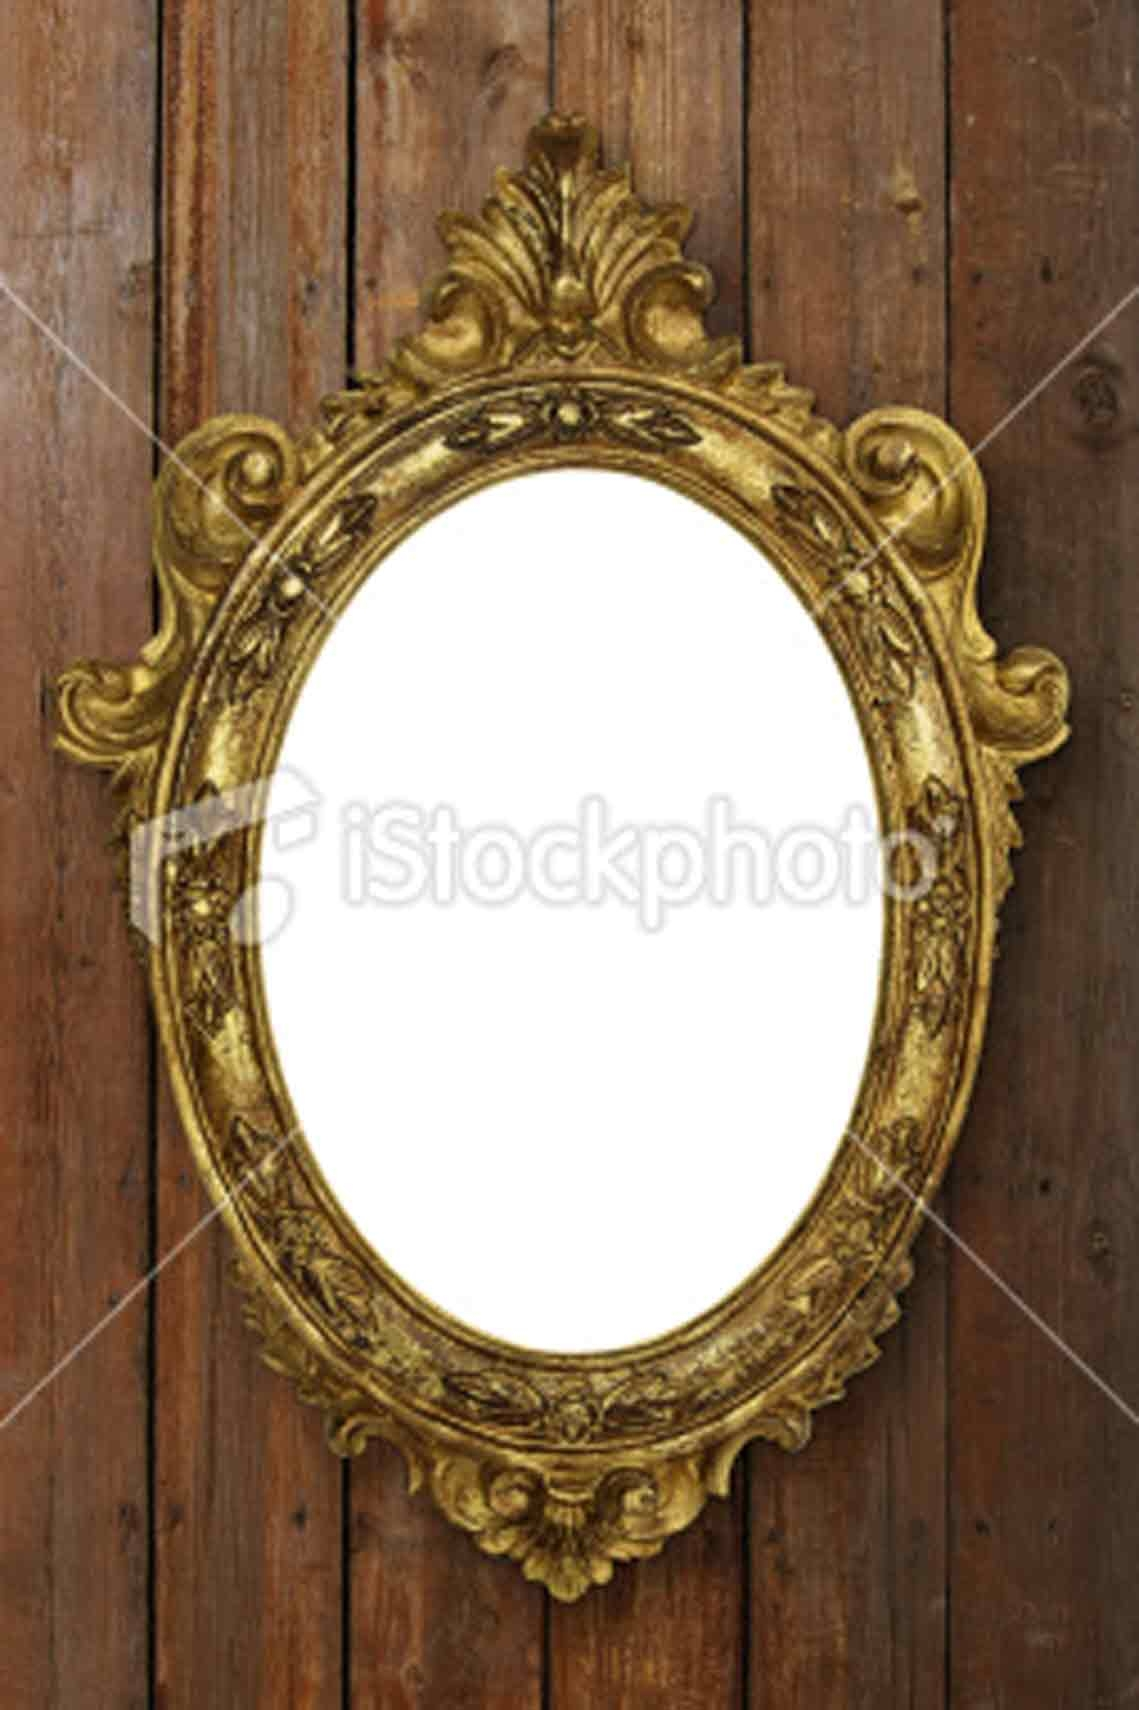 Home Decor Antique Wall Mirrorantique Mirrorwall Mirrordecor Pertaining To Old Fashioned Mirrors (Image 6 of 15)